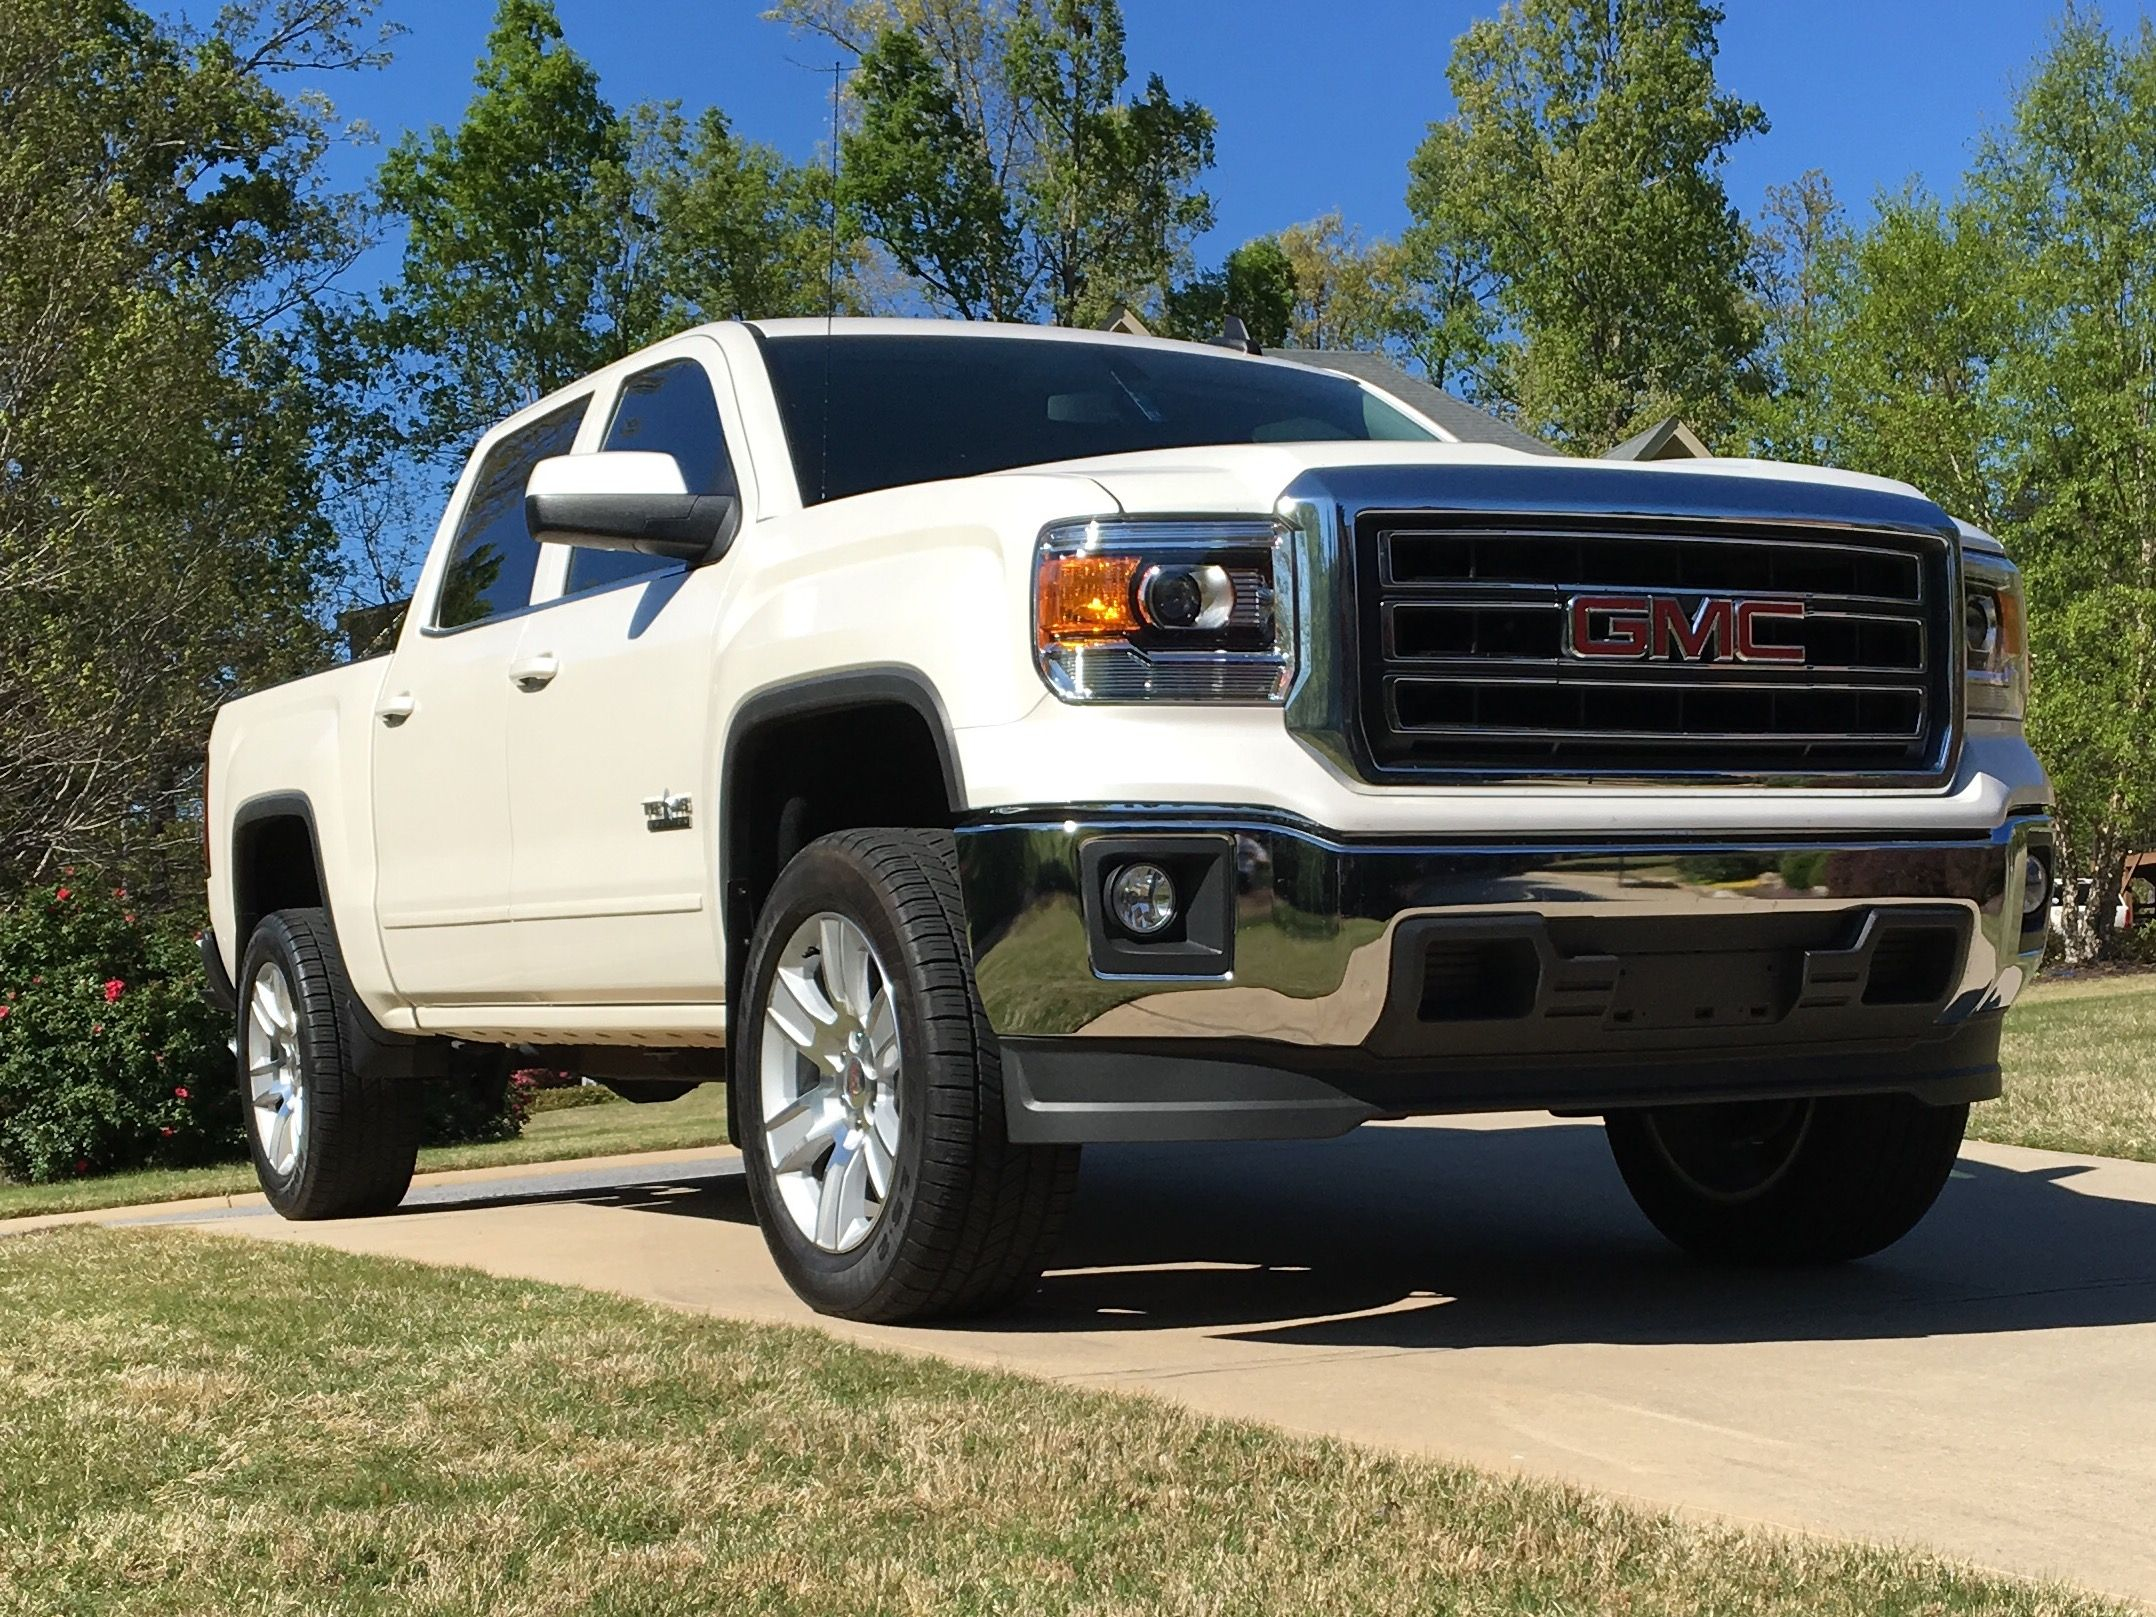 2015 gmc sierra texas edition 2 leveling kit and 1 wheel spacers really cool things. Black Bedroom Furniture Sets. Home Design Ideas